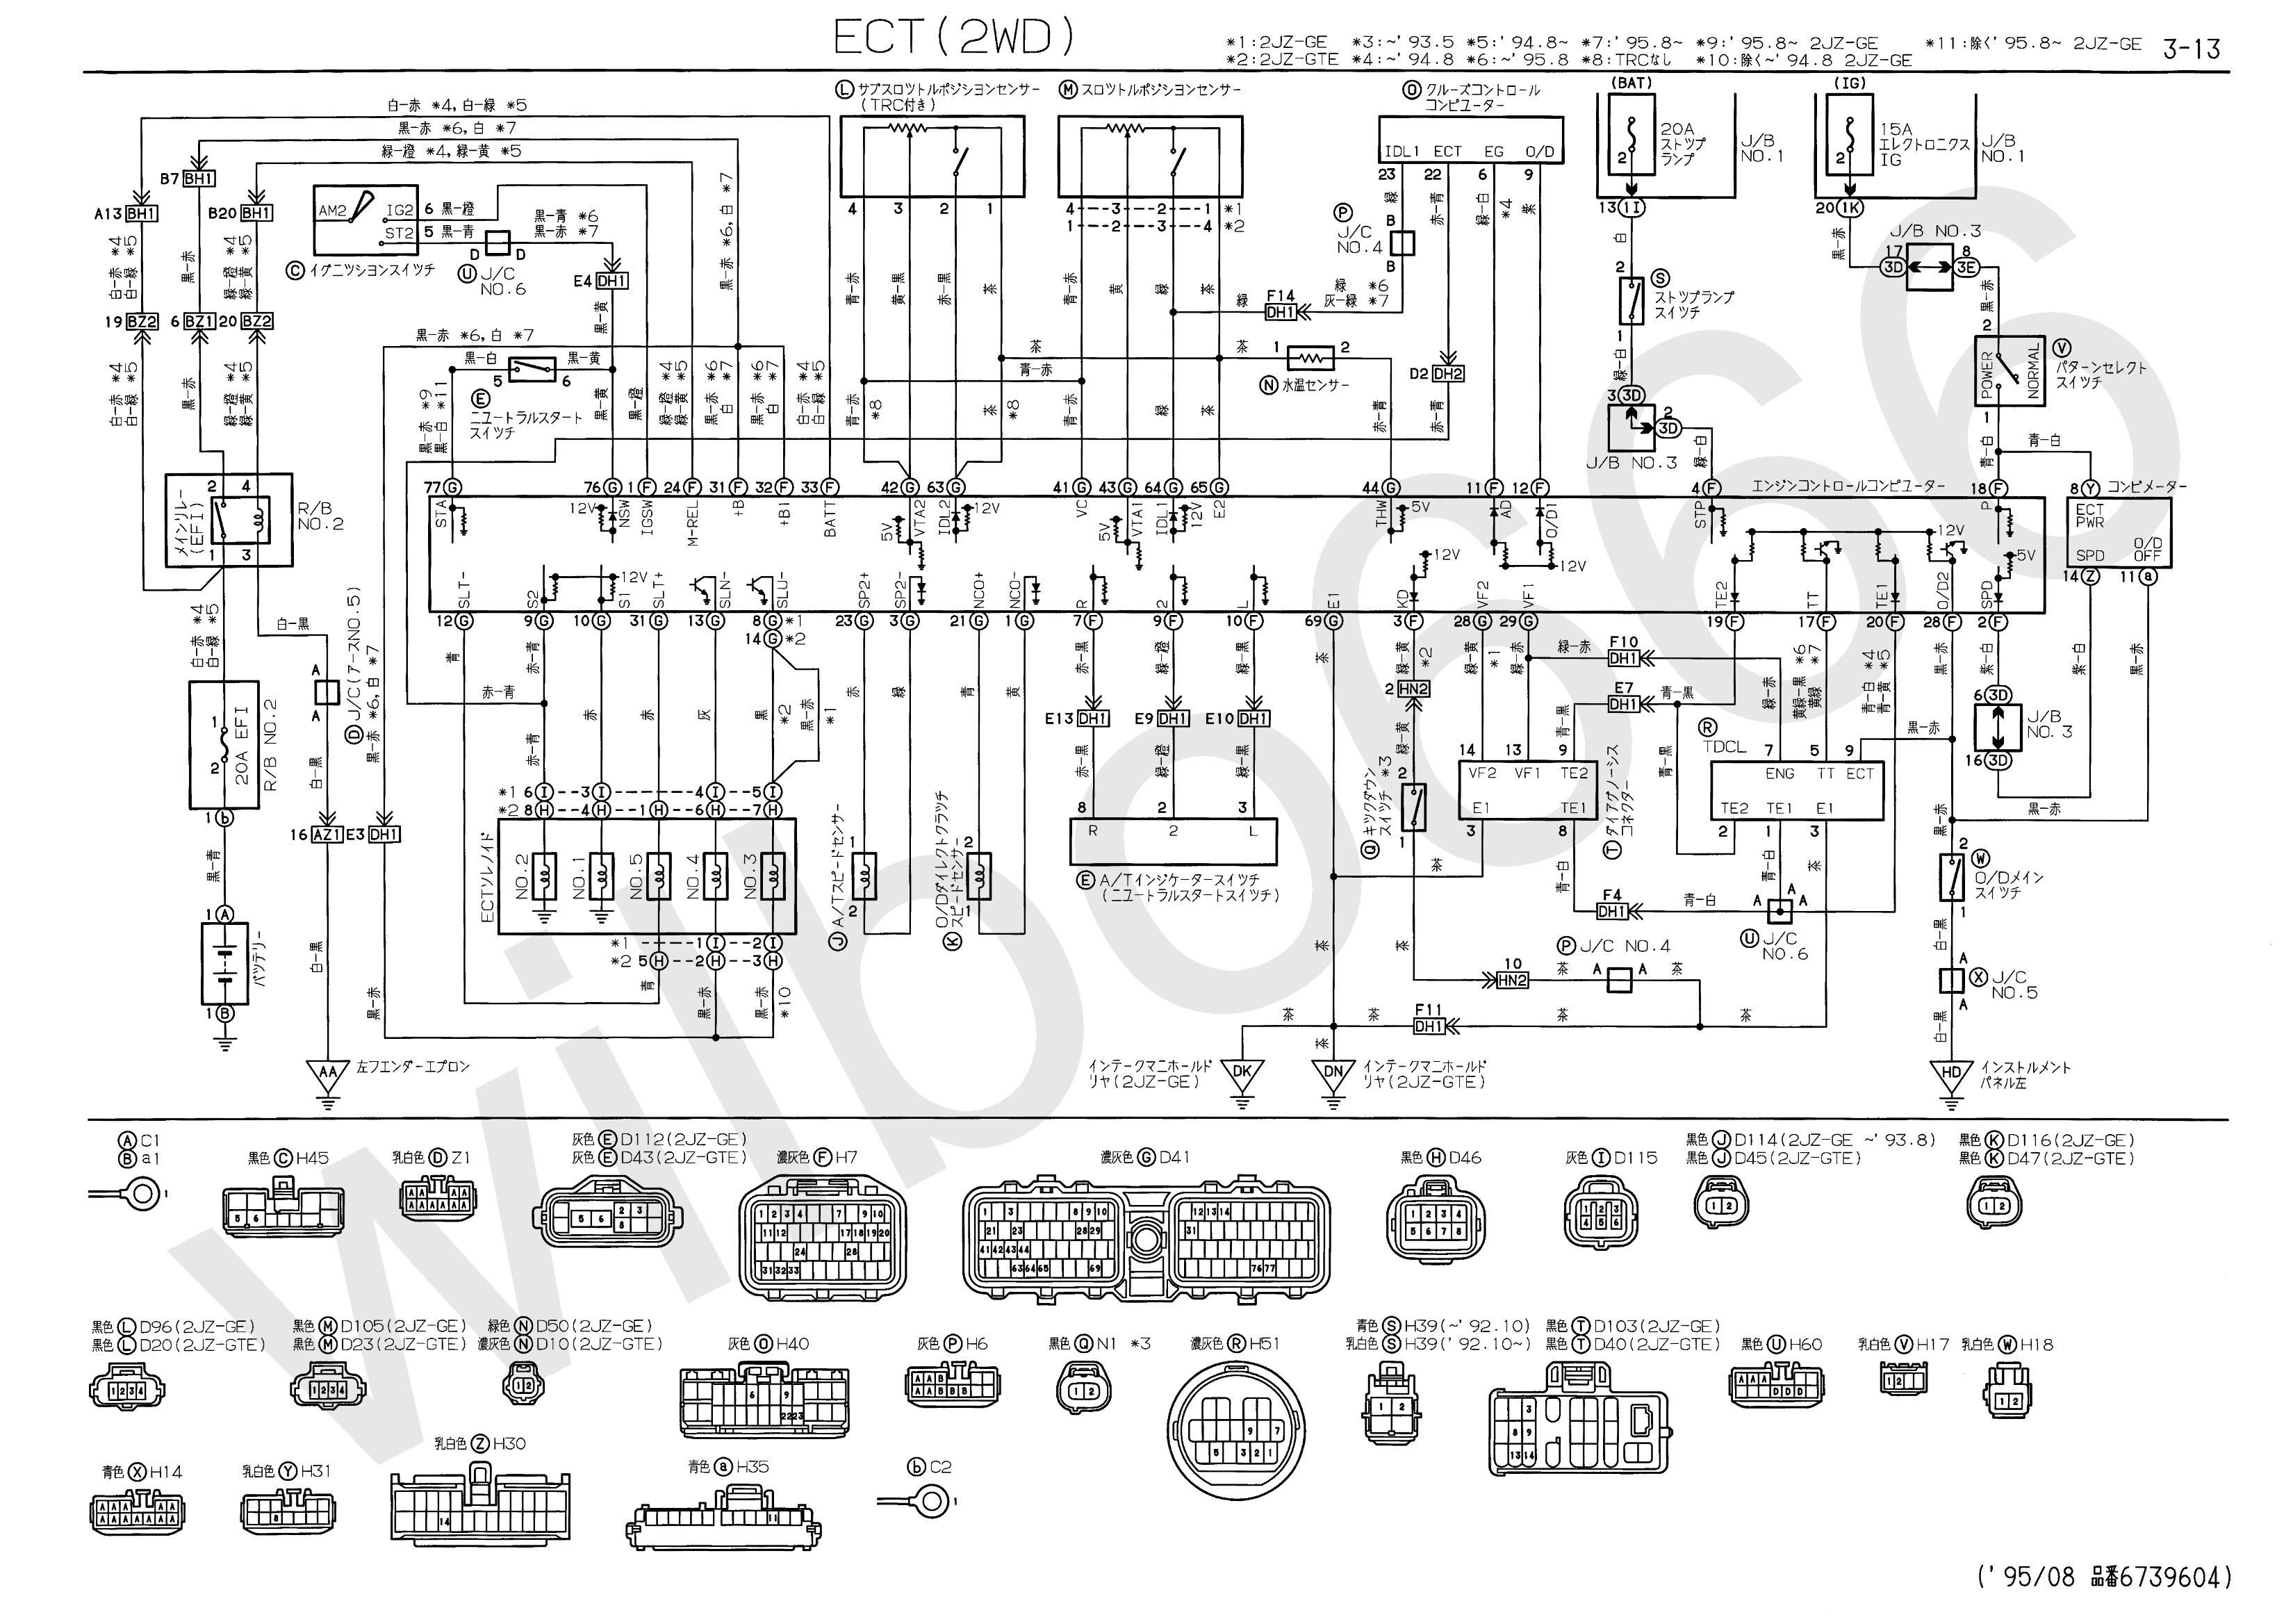 medium resolution of toyota wiring diagrams 01 charts free diagram images toyota wiring diagrams car parts download